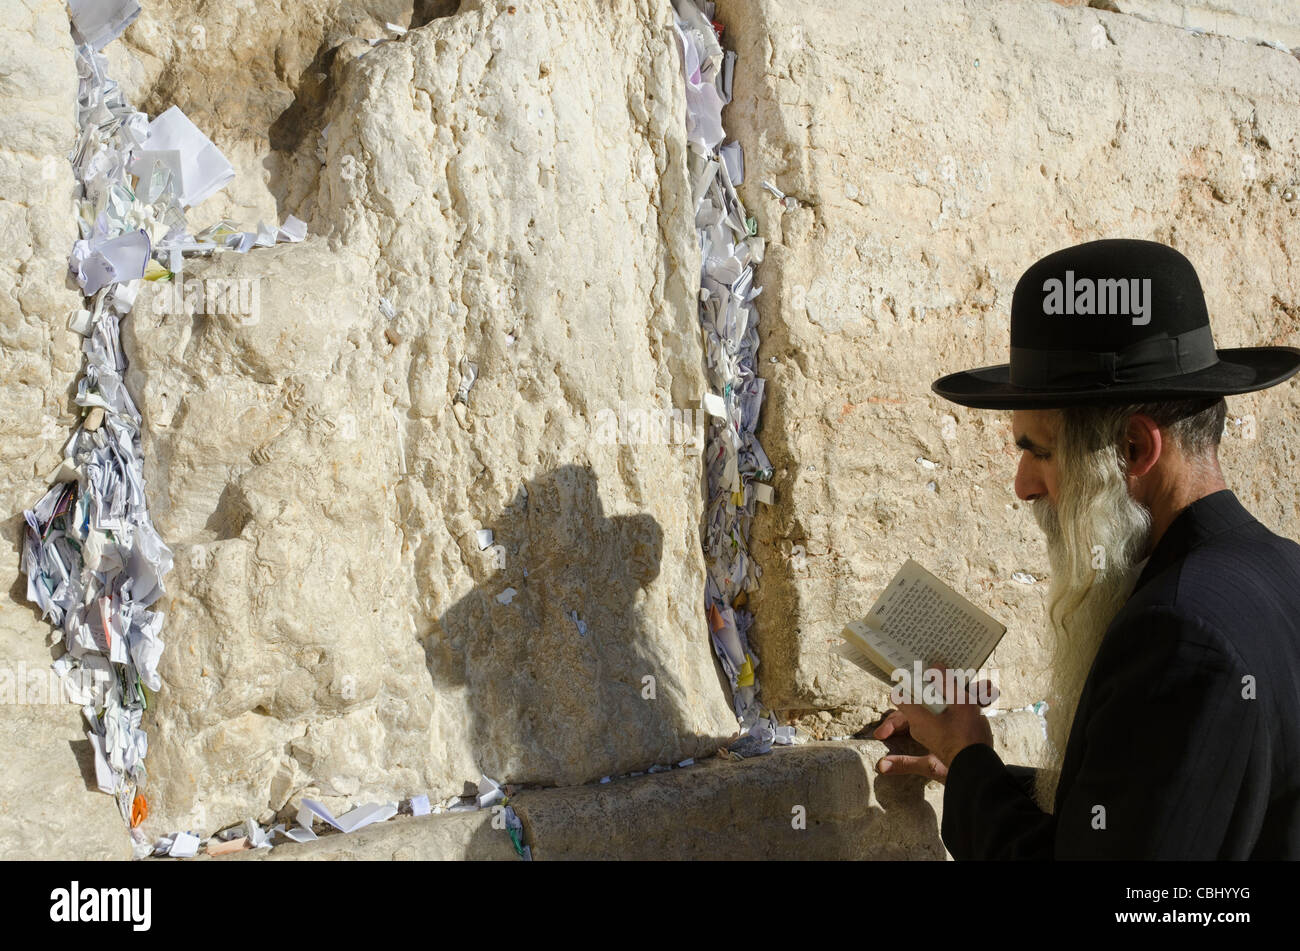 Orthodox Jew praying at Western Wall with paper notes in crack. Jerusalem Old City. Israel - Stock Image